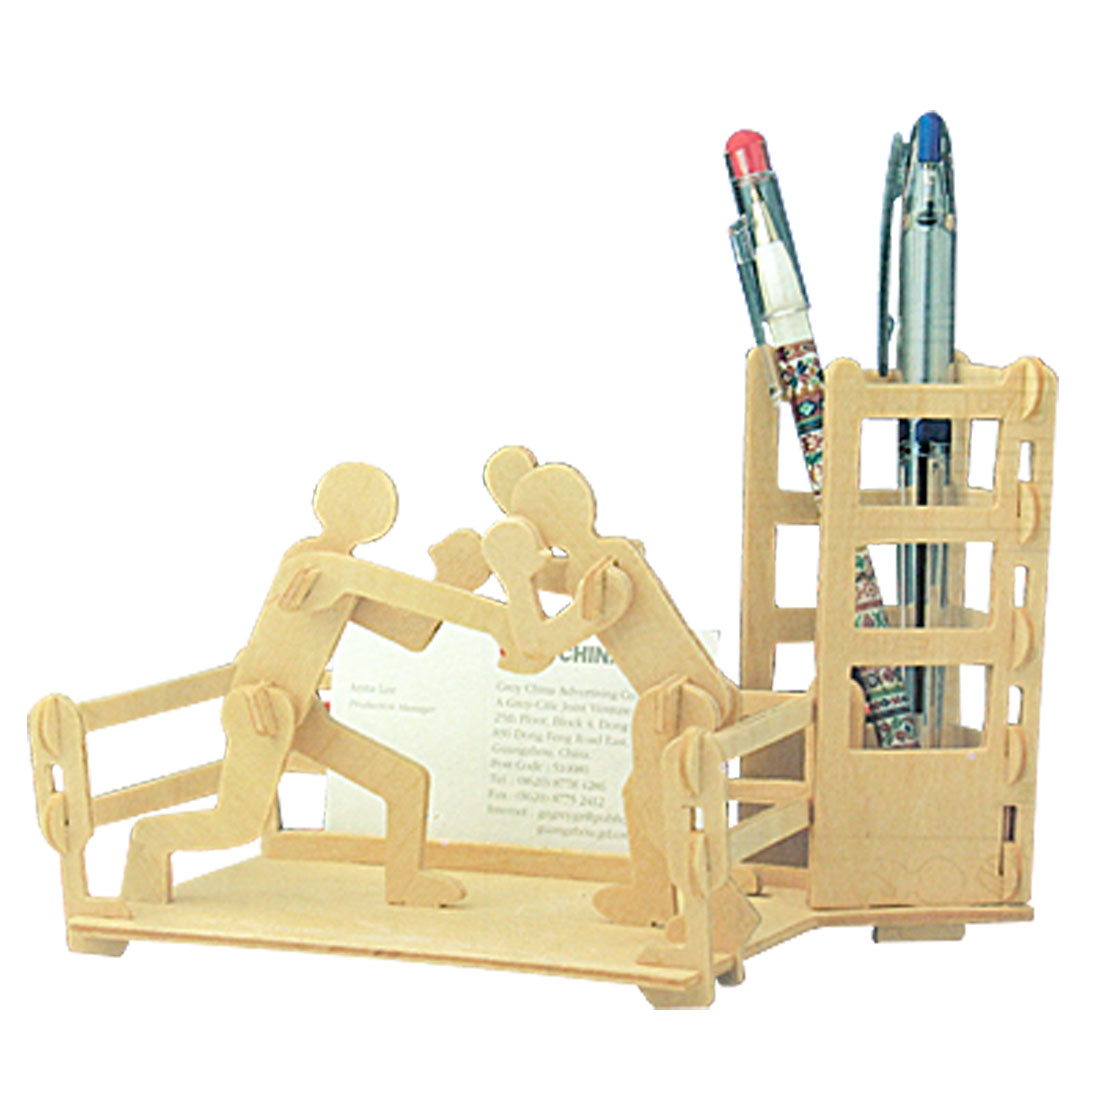 DIY-Toys-Boxing-Pen-Holder-Woodcraft-Construction-Kit